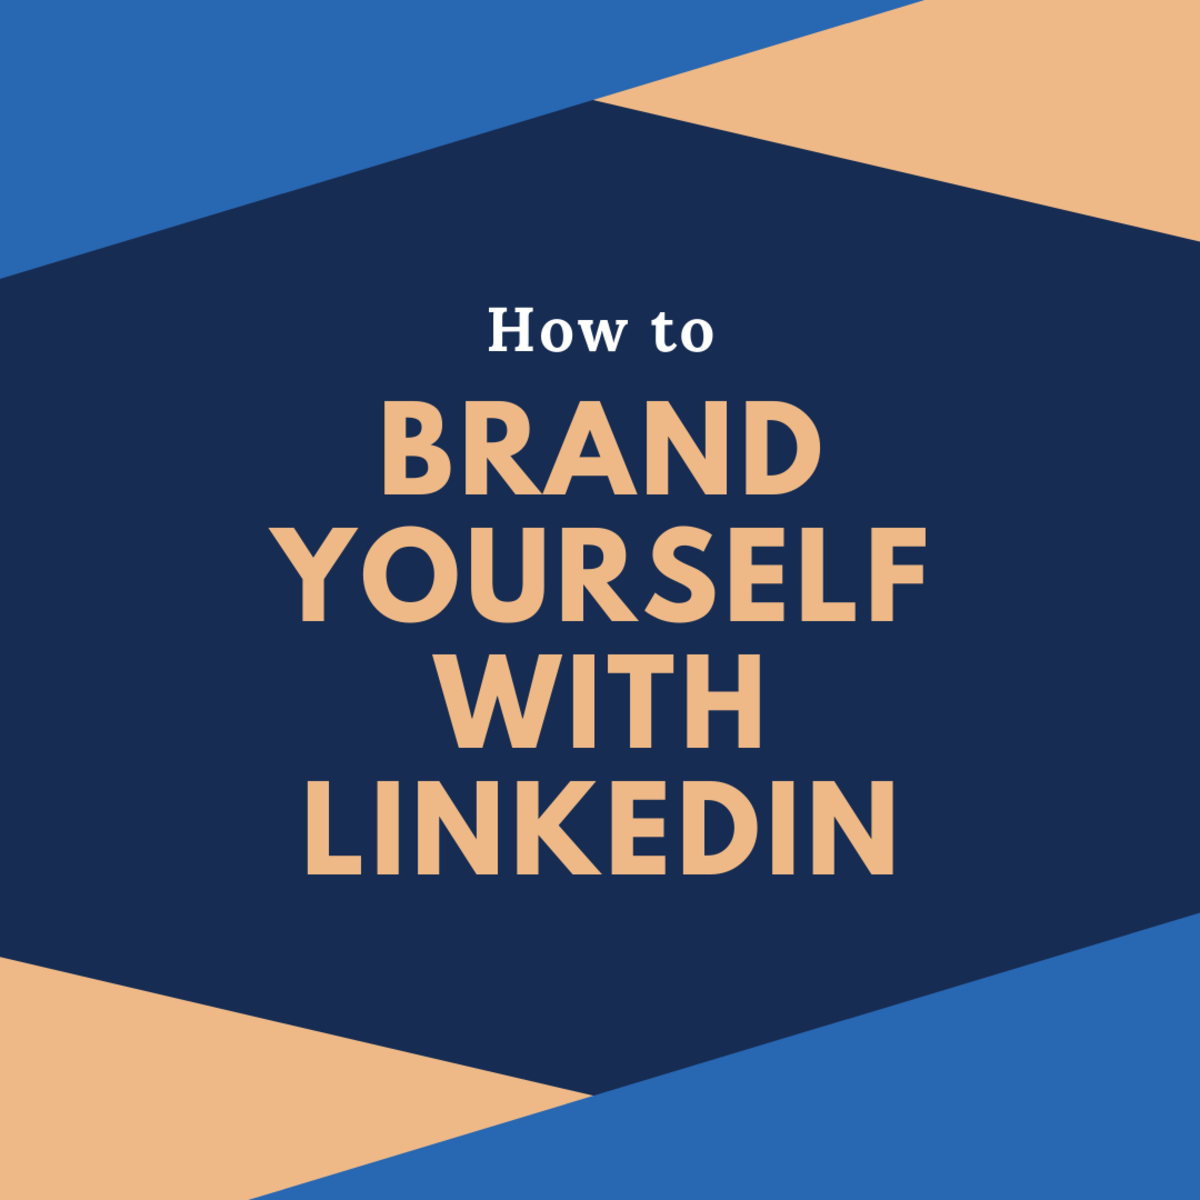 Learn how to brand yourself and make connections on LinkedIn.